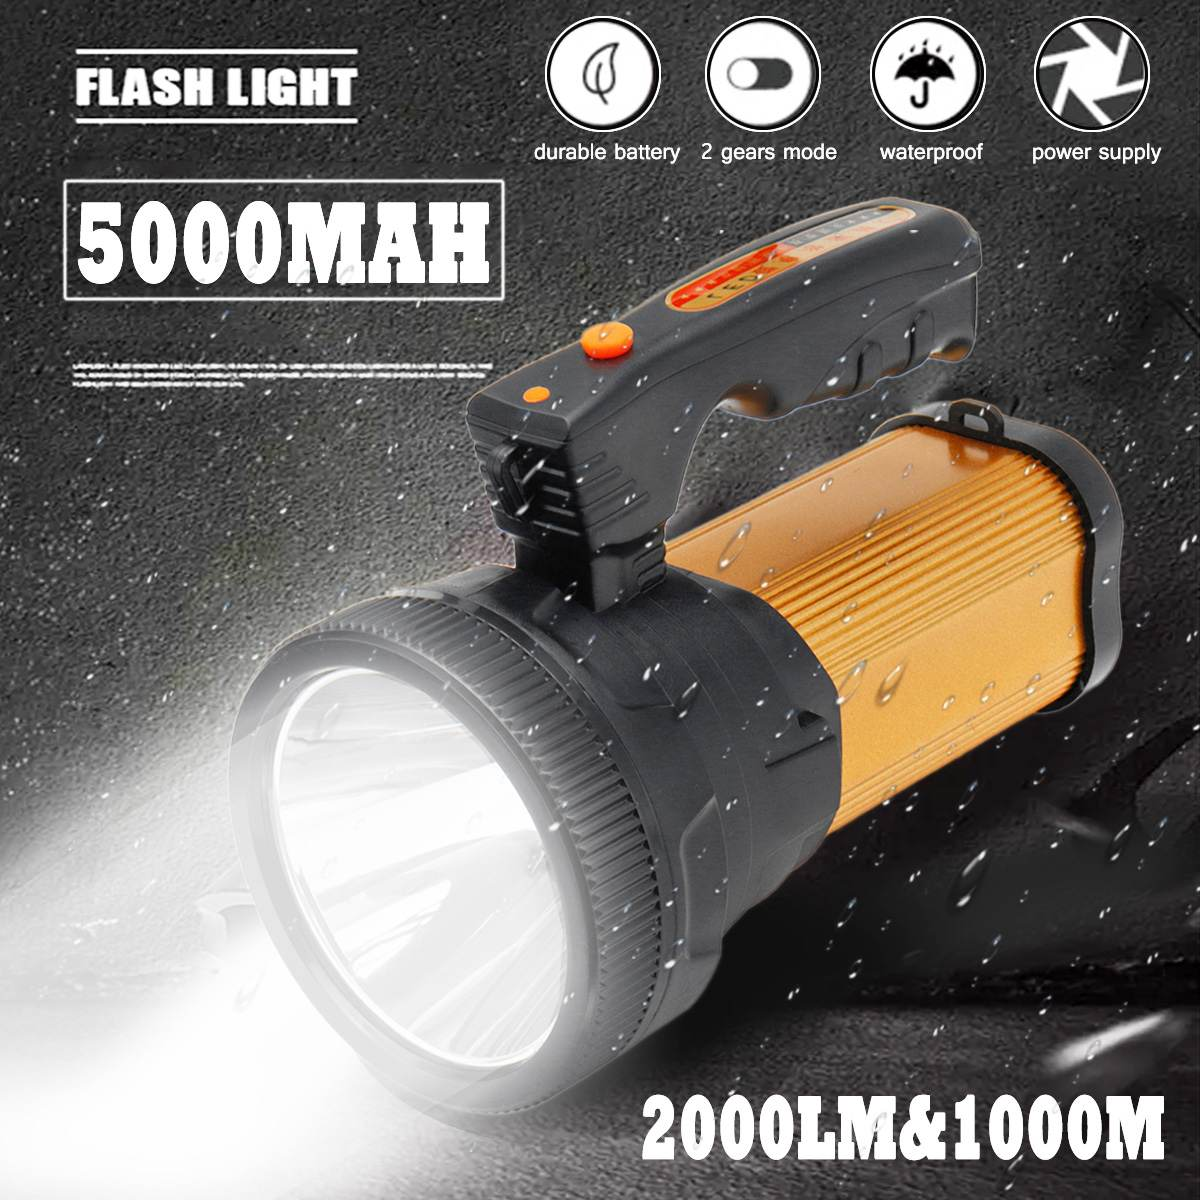 5000MAh 2000lm Rechargeable LED Lights Handheld Portable Spotlight Flashlight Searchlight Lantern For Outdoor Camping Travel